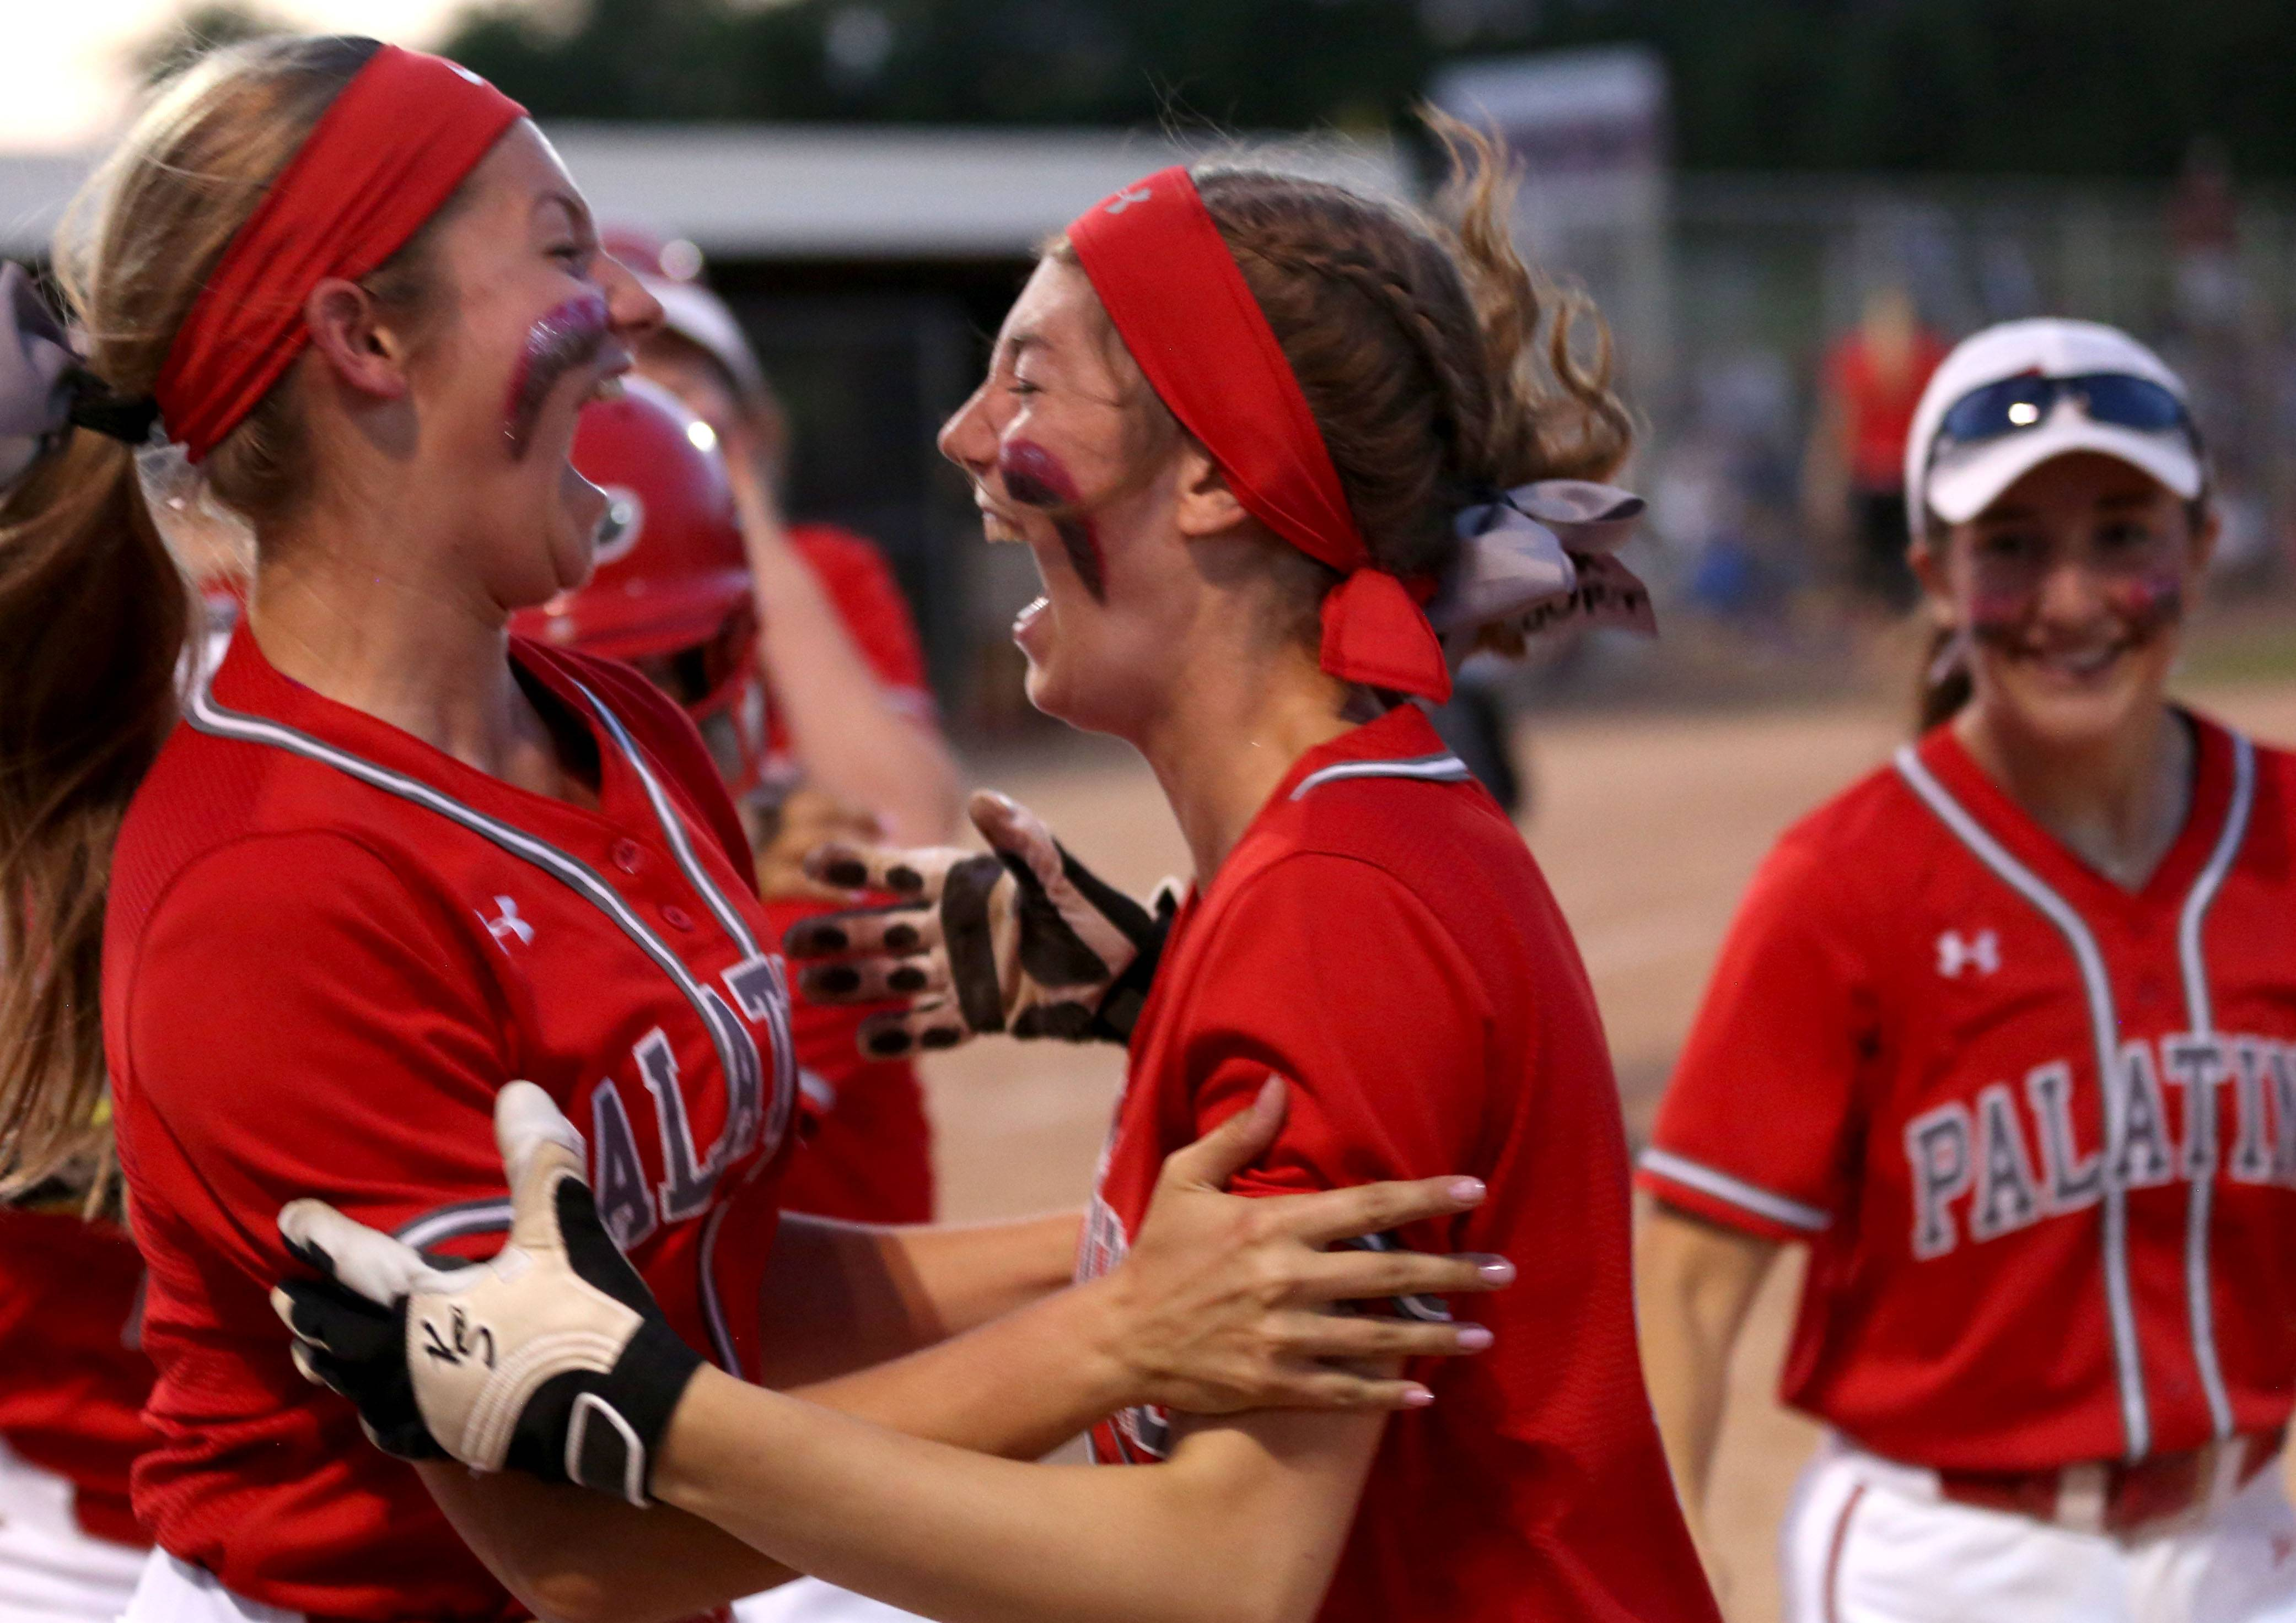 Palatine's Emily Brinckerhoff, left, and Rhiann Dick celebrate a 3-run homer from Emily Parrott in the Class 4A supersectional at Barrington on Monday night.